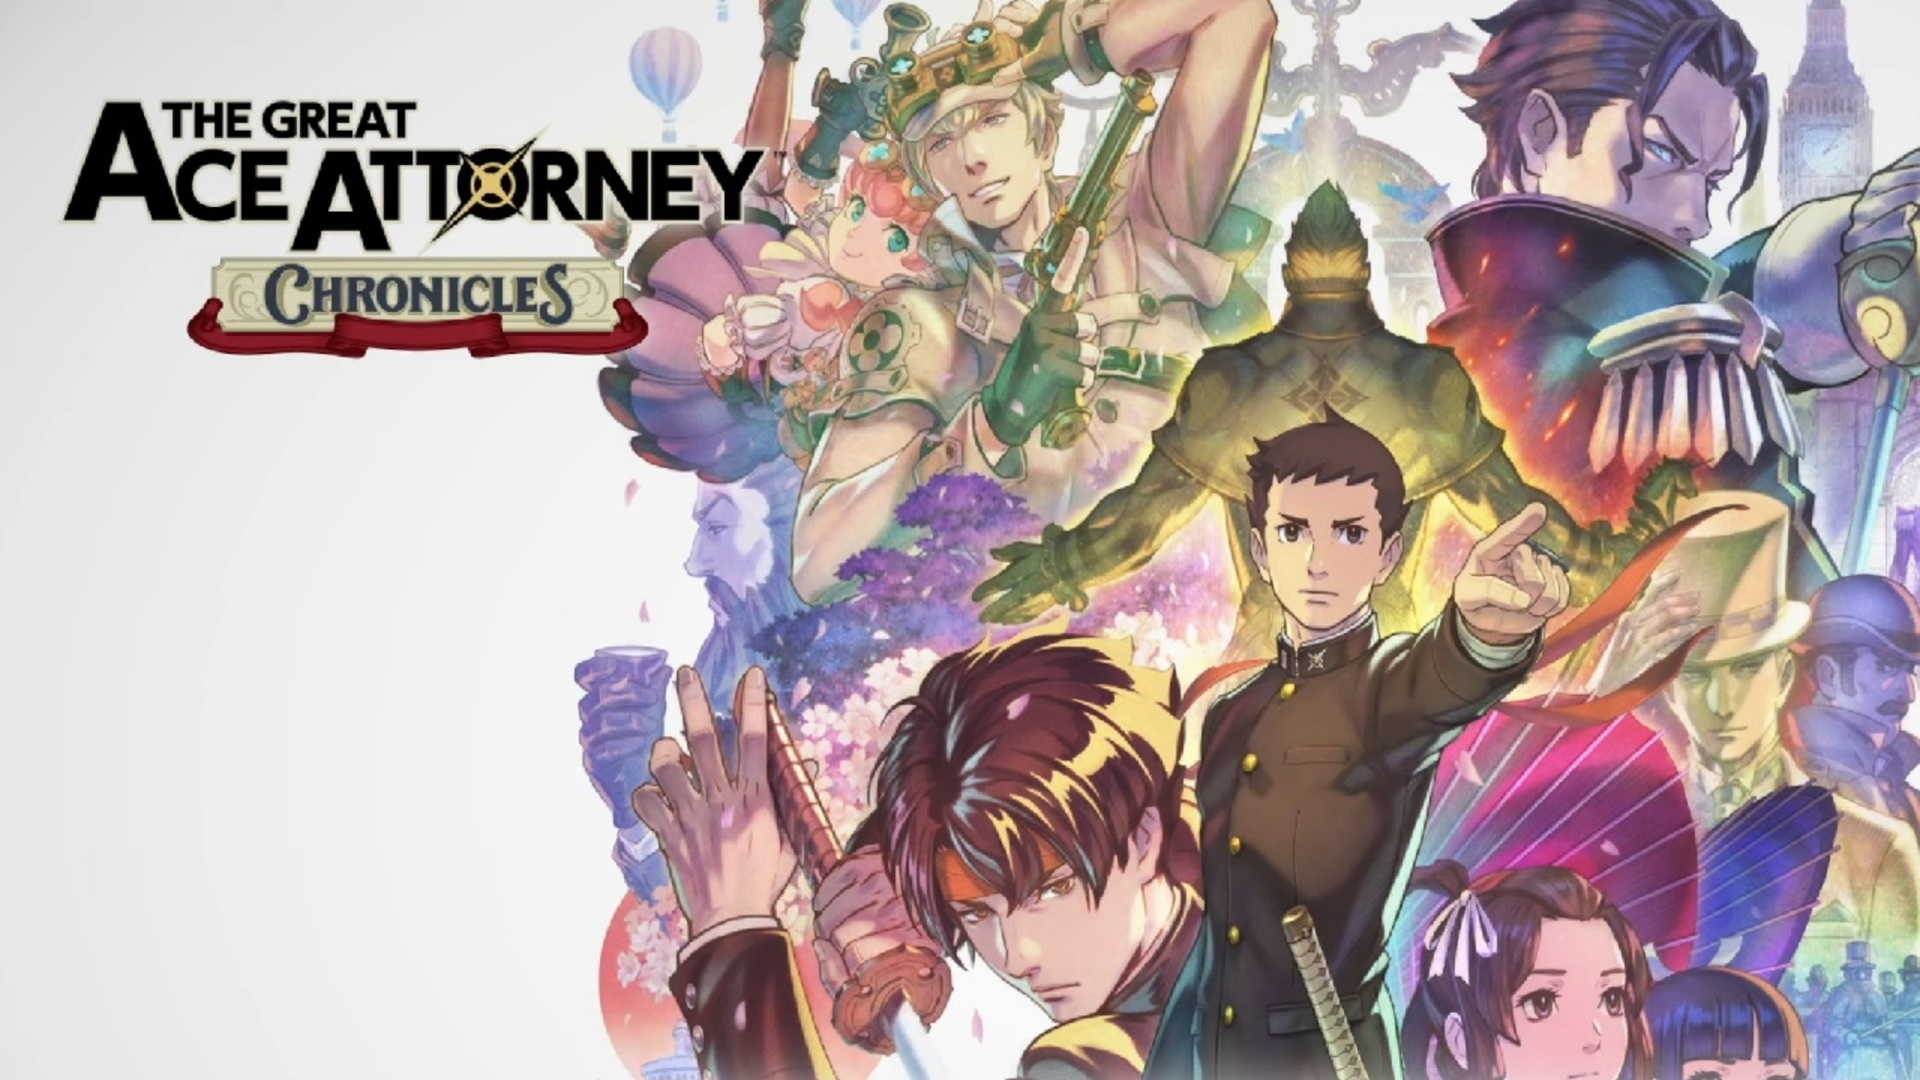 The Great Ace Attorney Chronicles Releasing To Western Audiences Soon